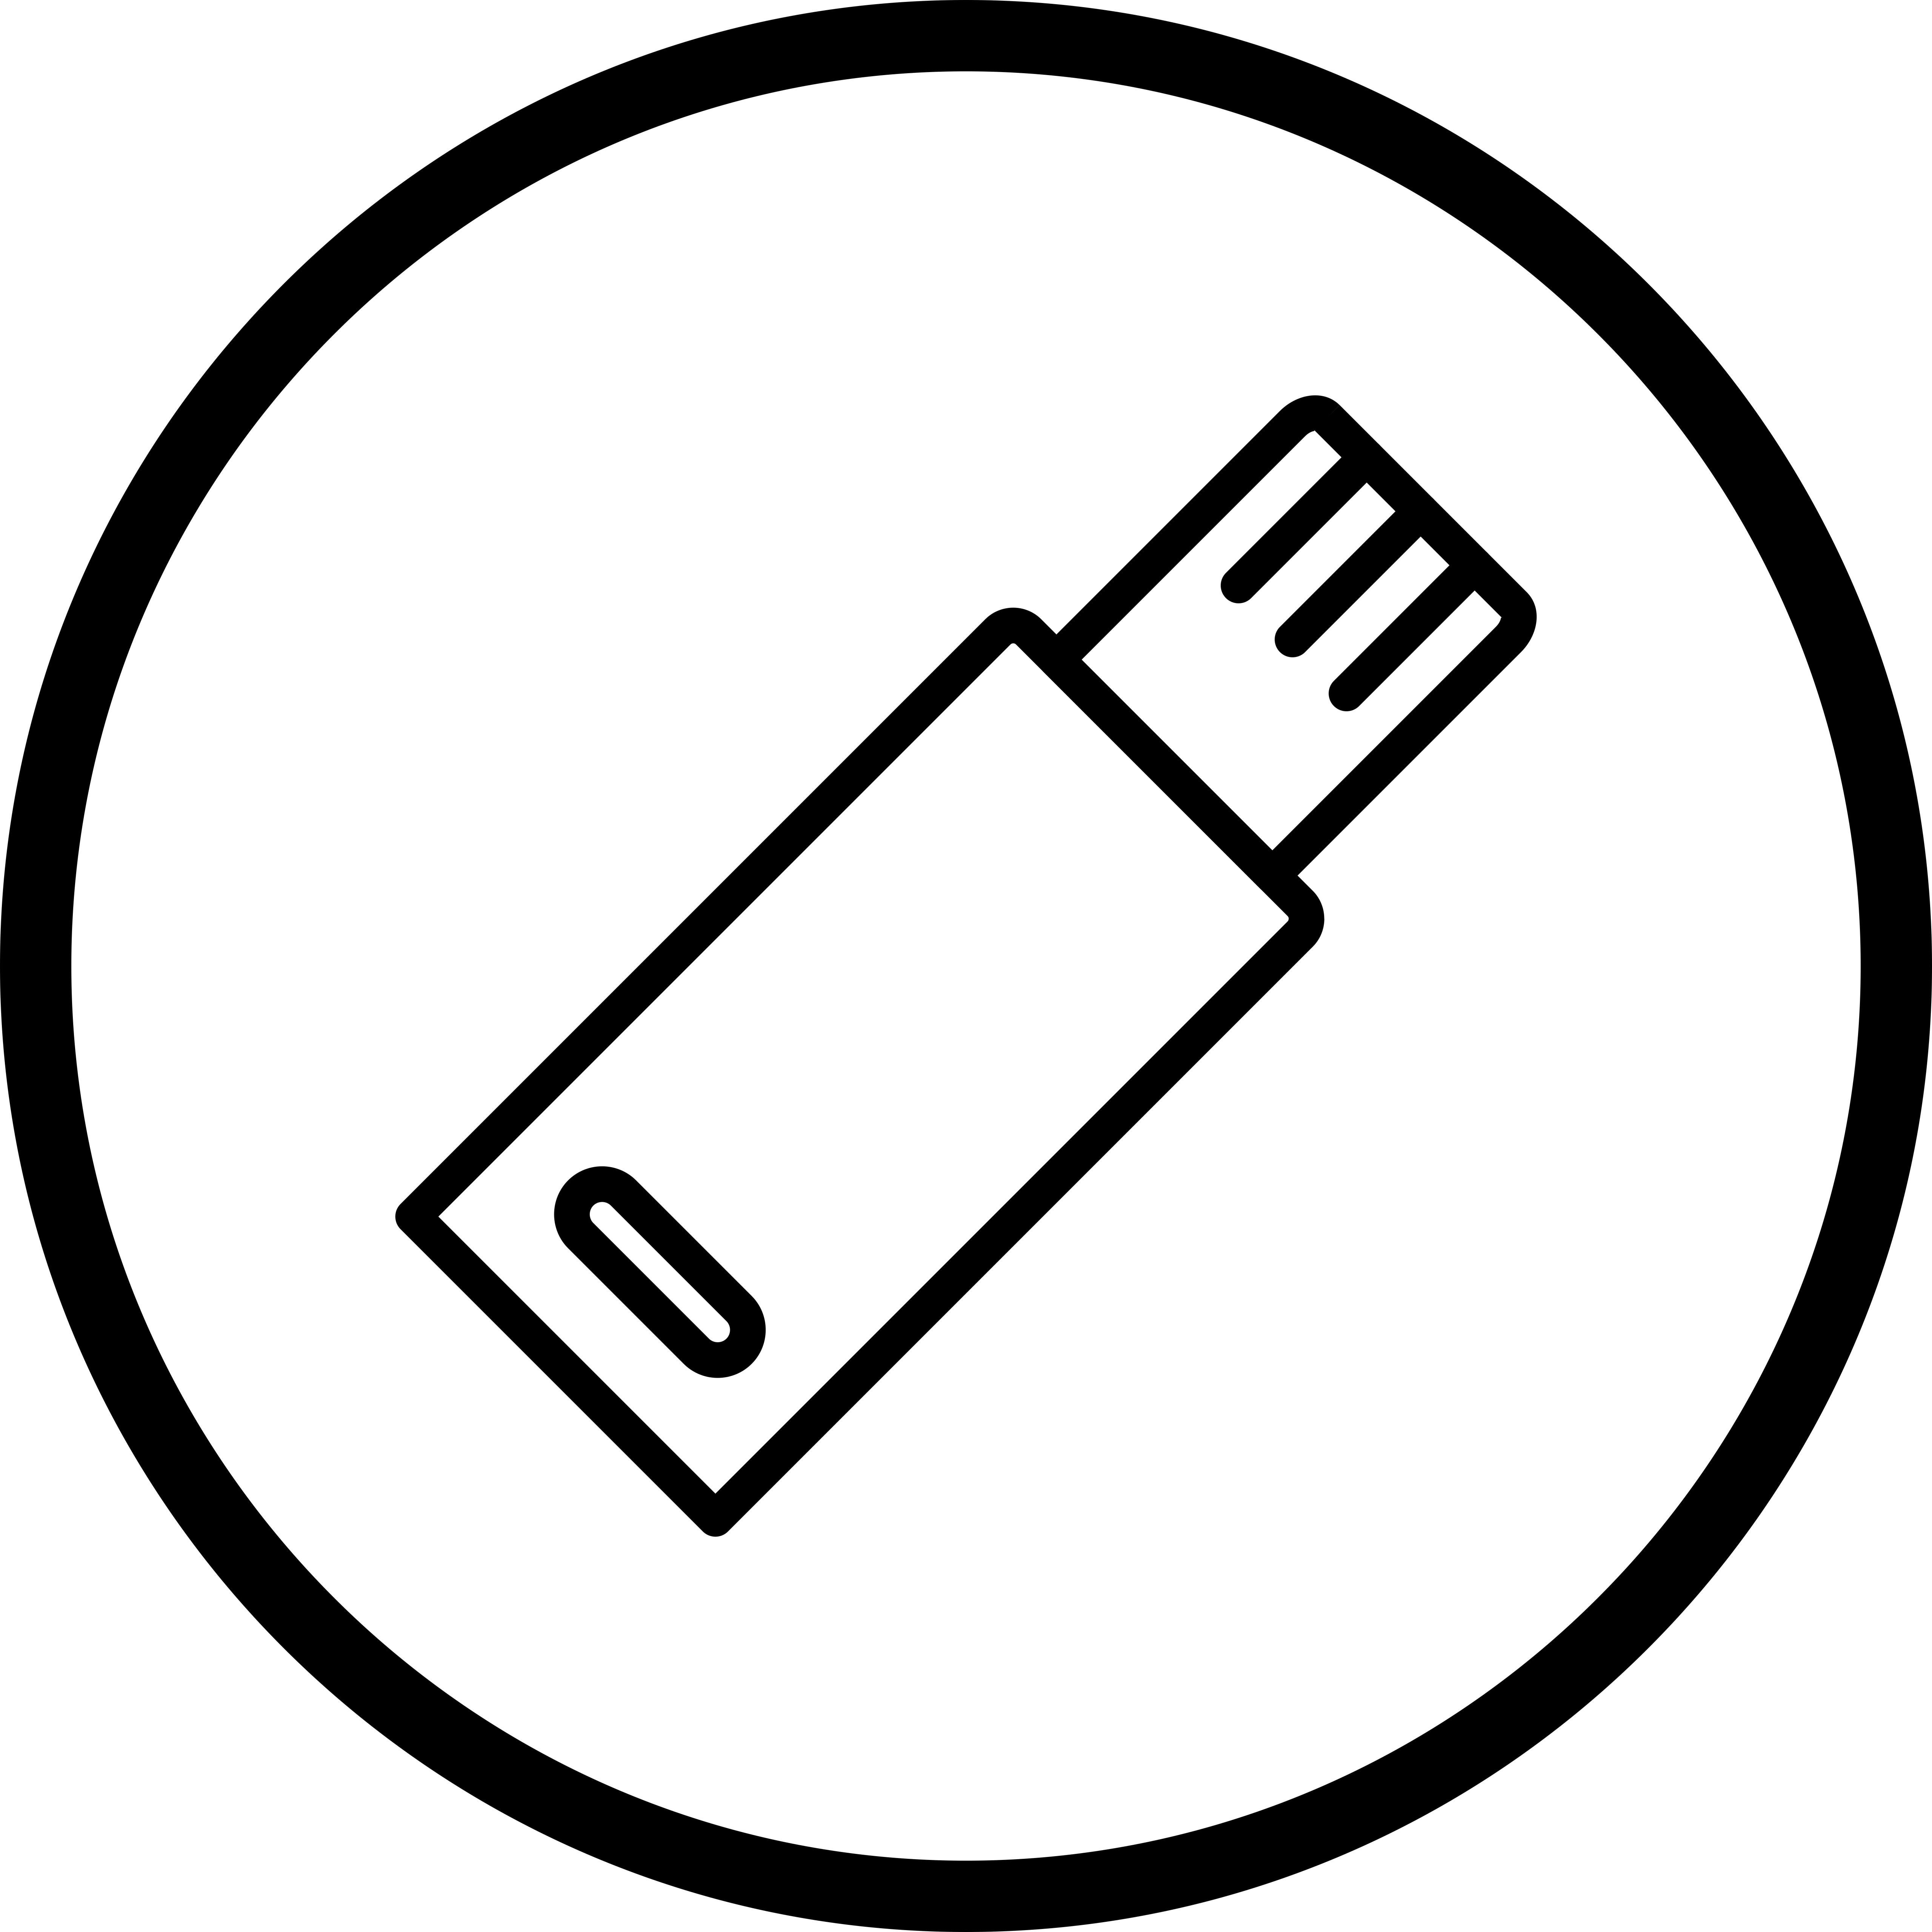 Usb Vector Icon